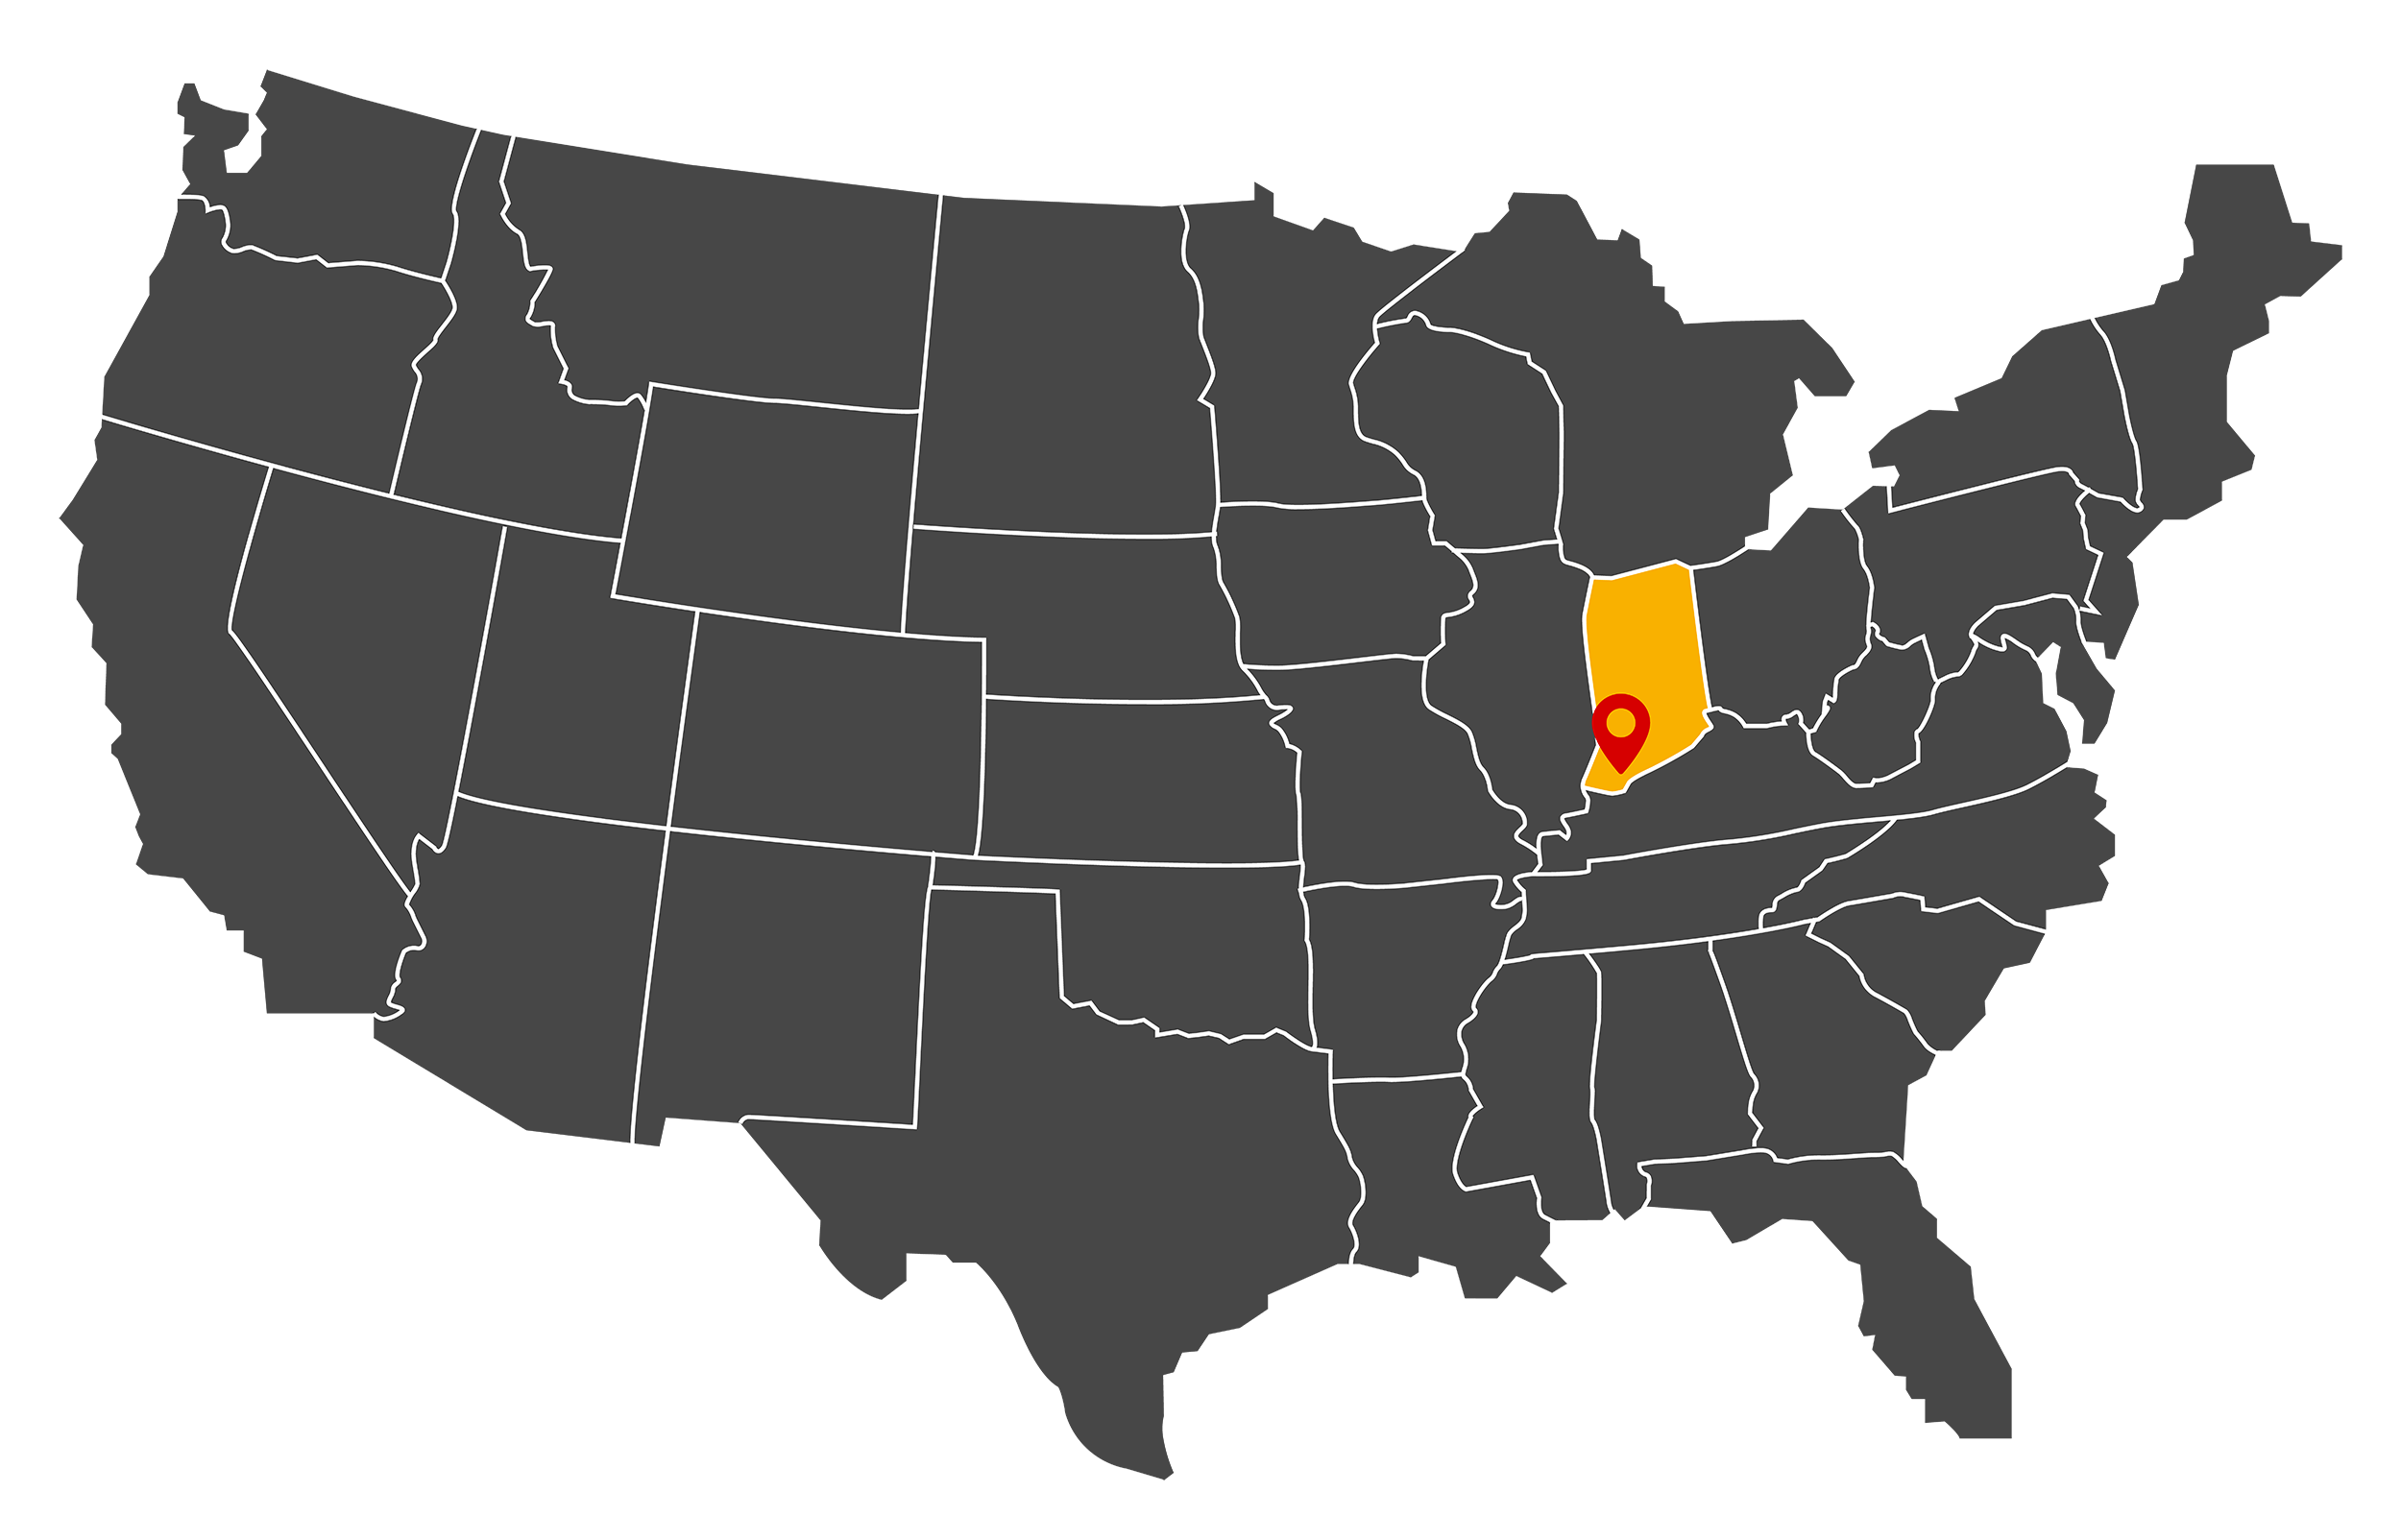 prime-foods-llc-boonville-in-footer-map-crossroads-of-america